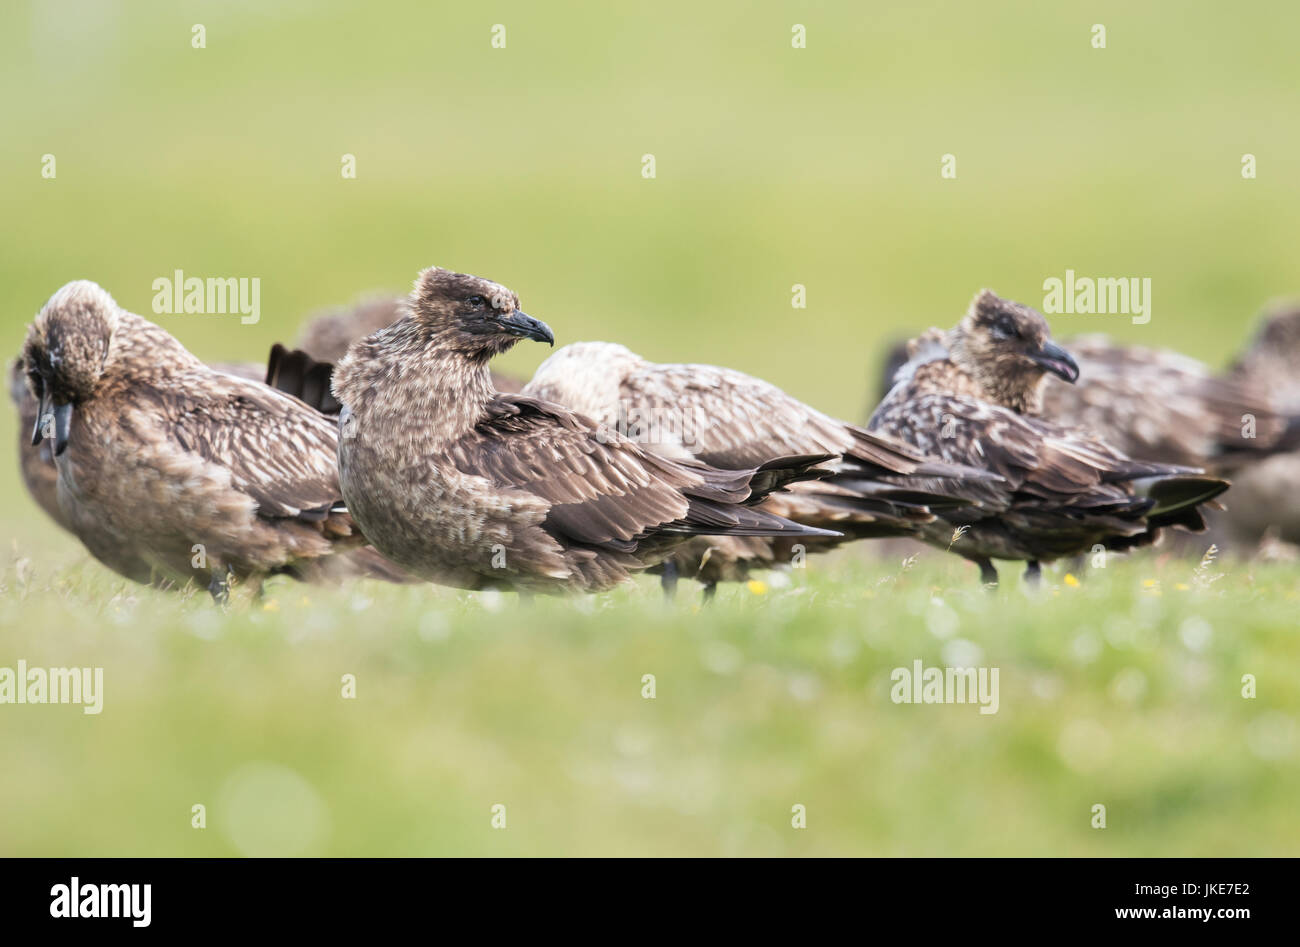 A group of Great Skuas (Catharacta skua) dry off and preen after bathing at a club site, Unst, Shetland, UK - Stock Image